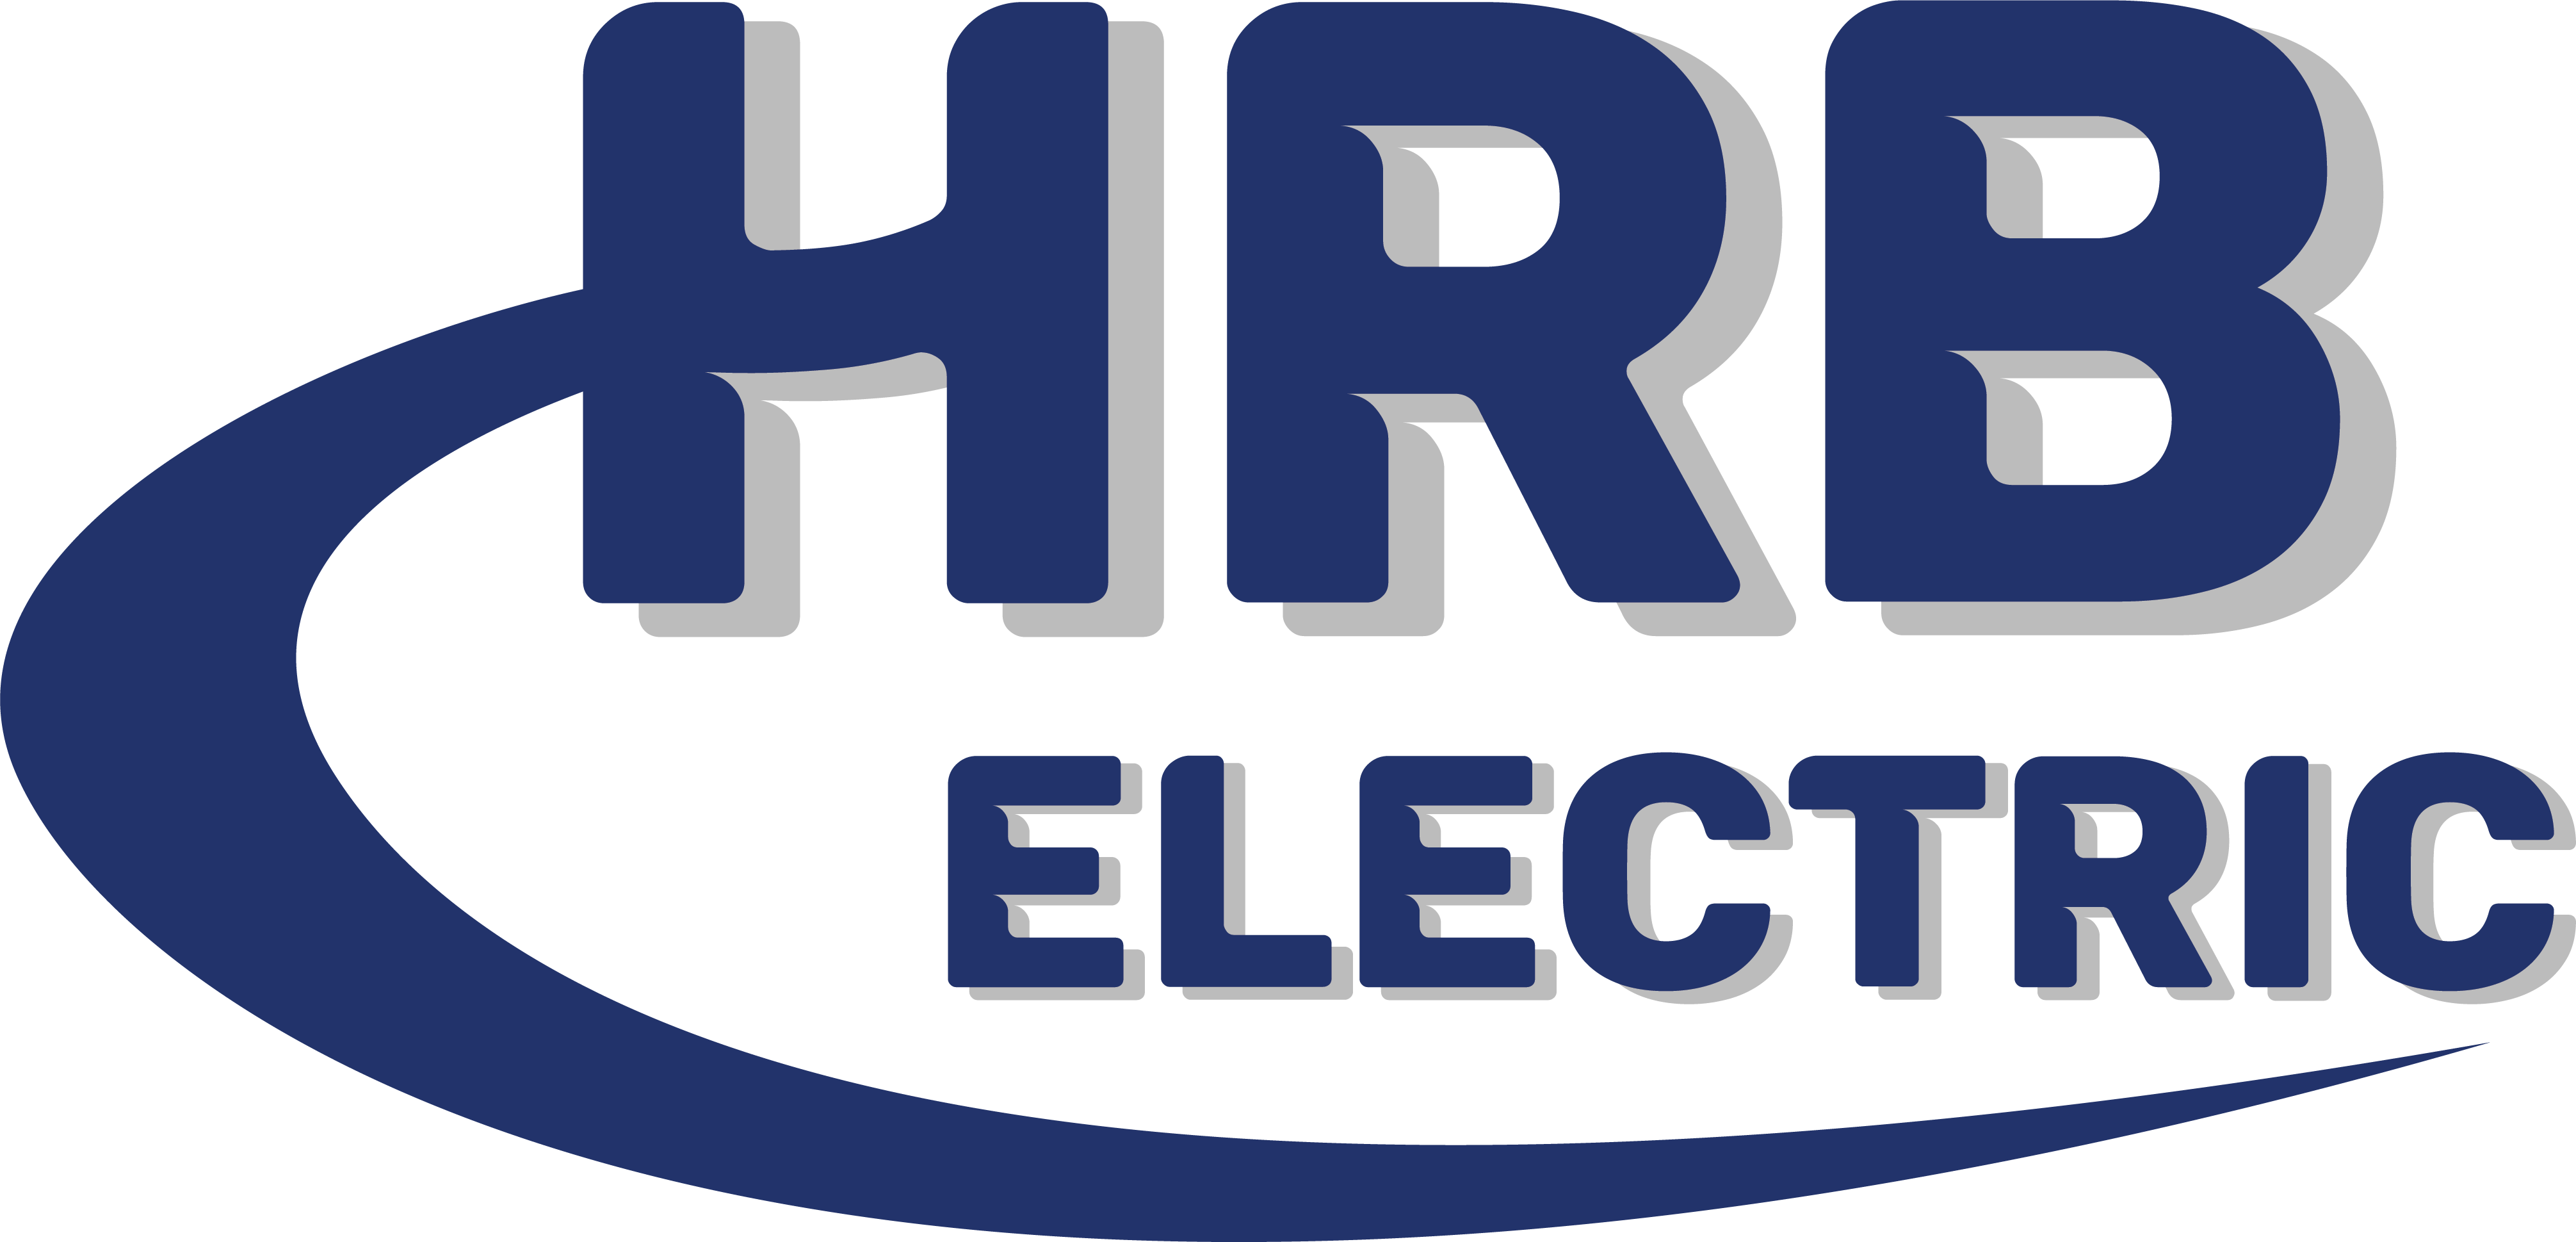 HRB Electric